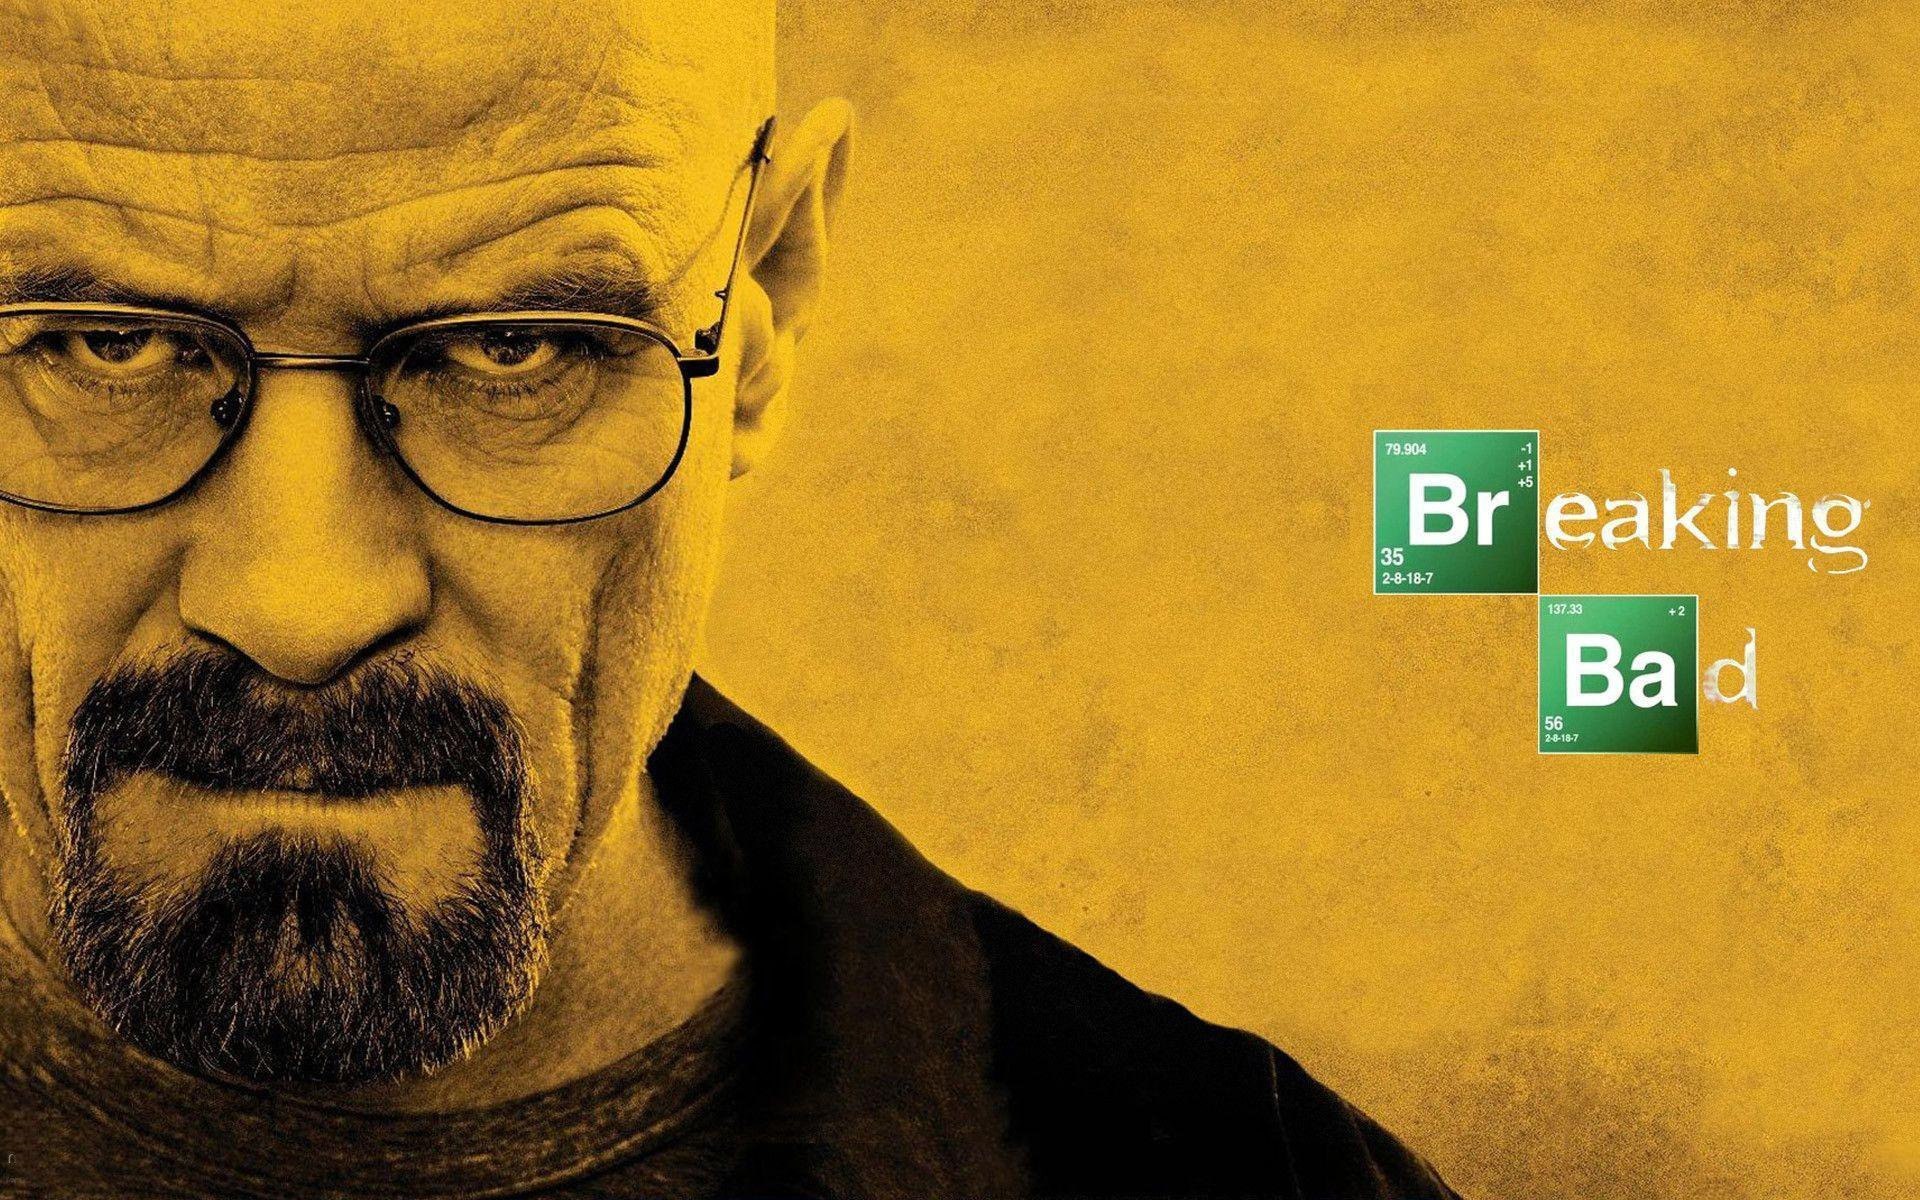 breaking bad 50 wallpapers - photo #36